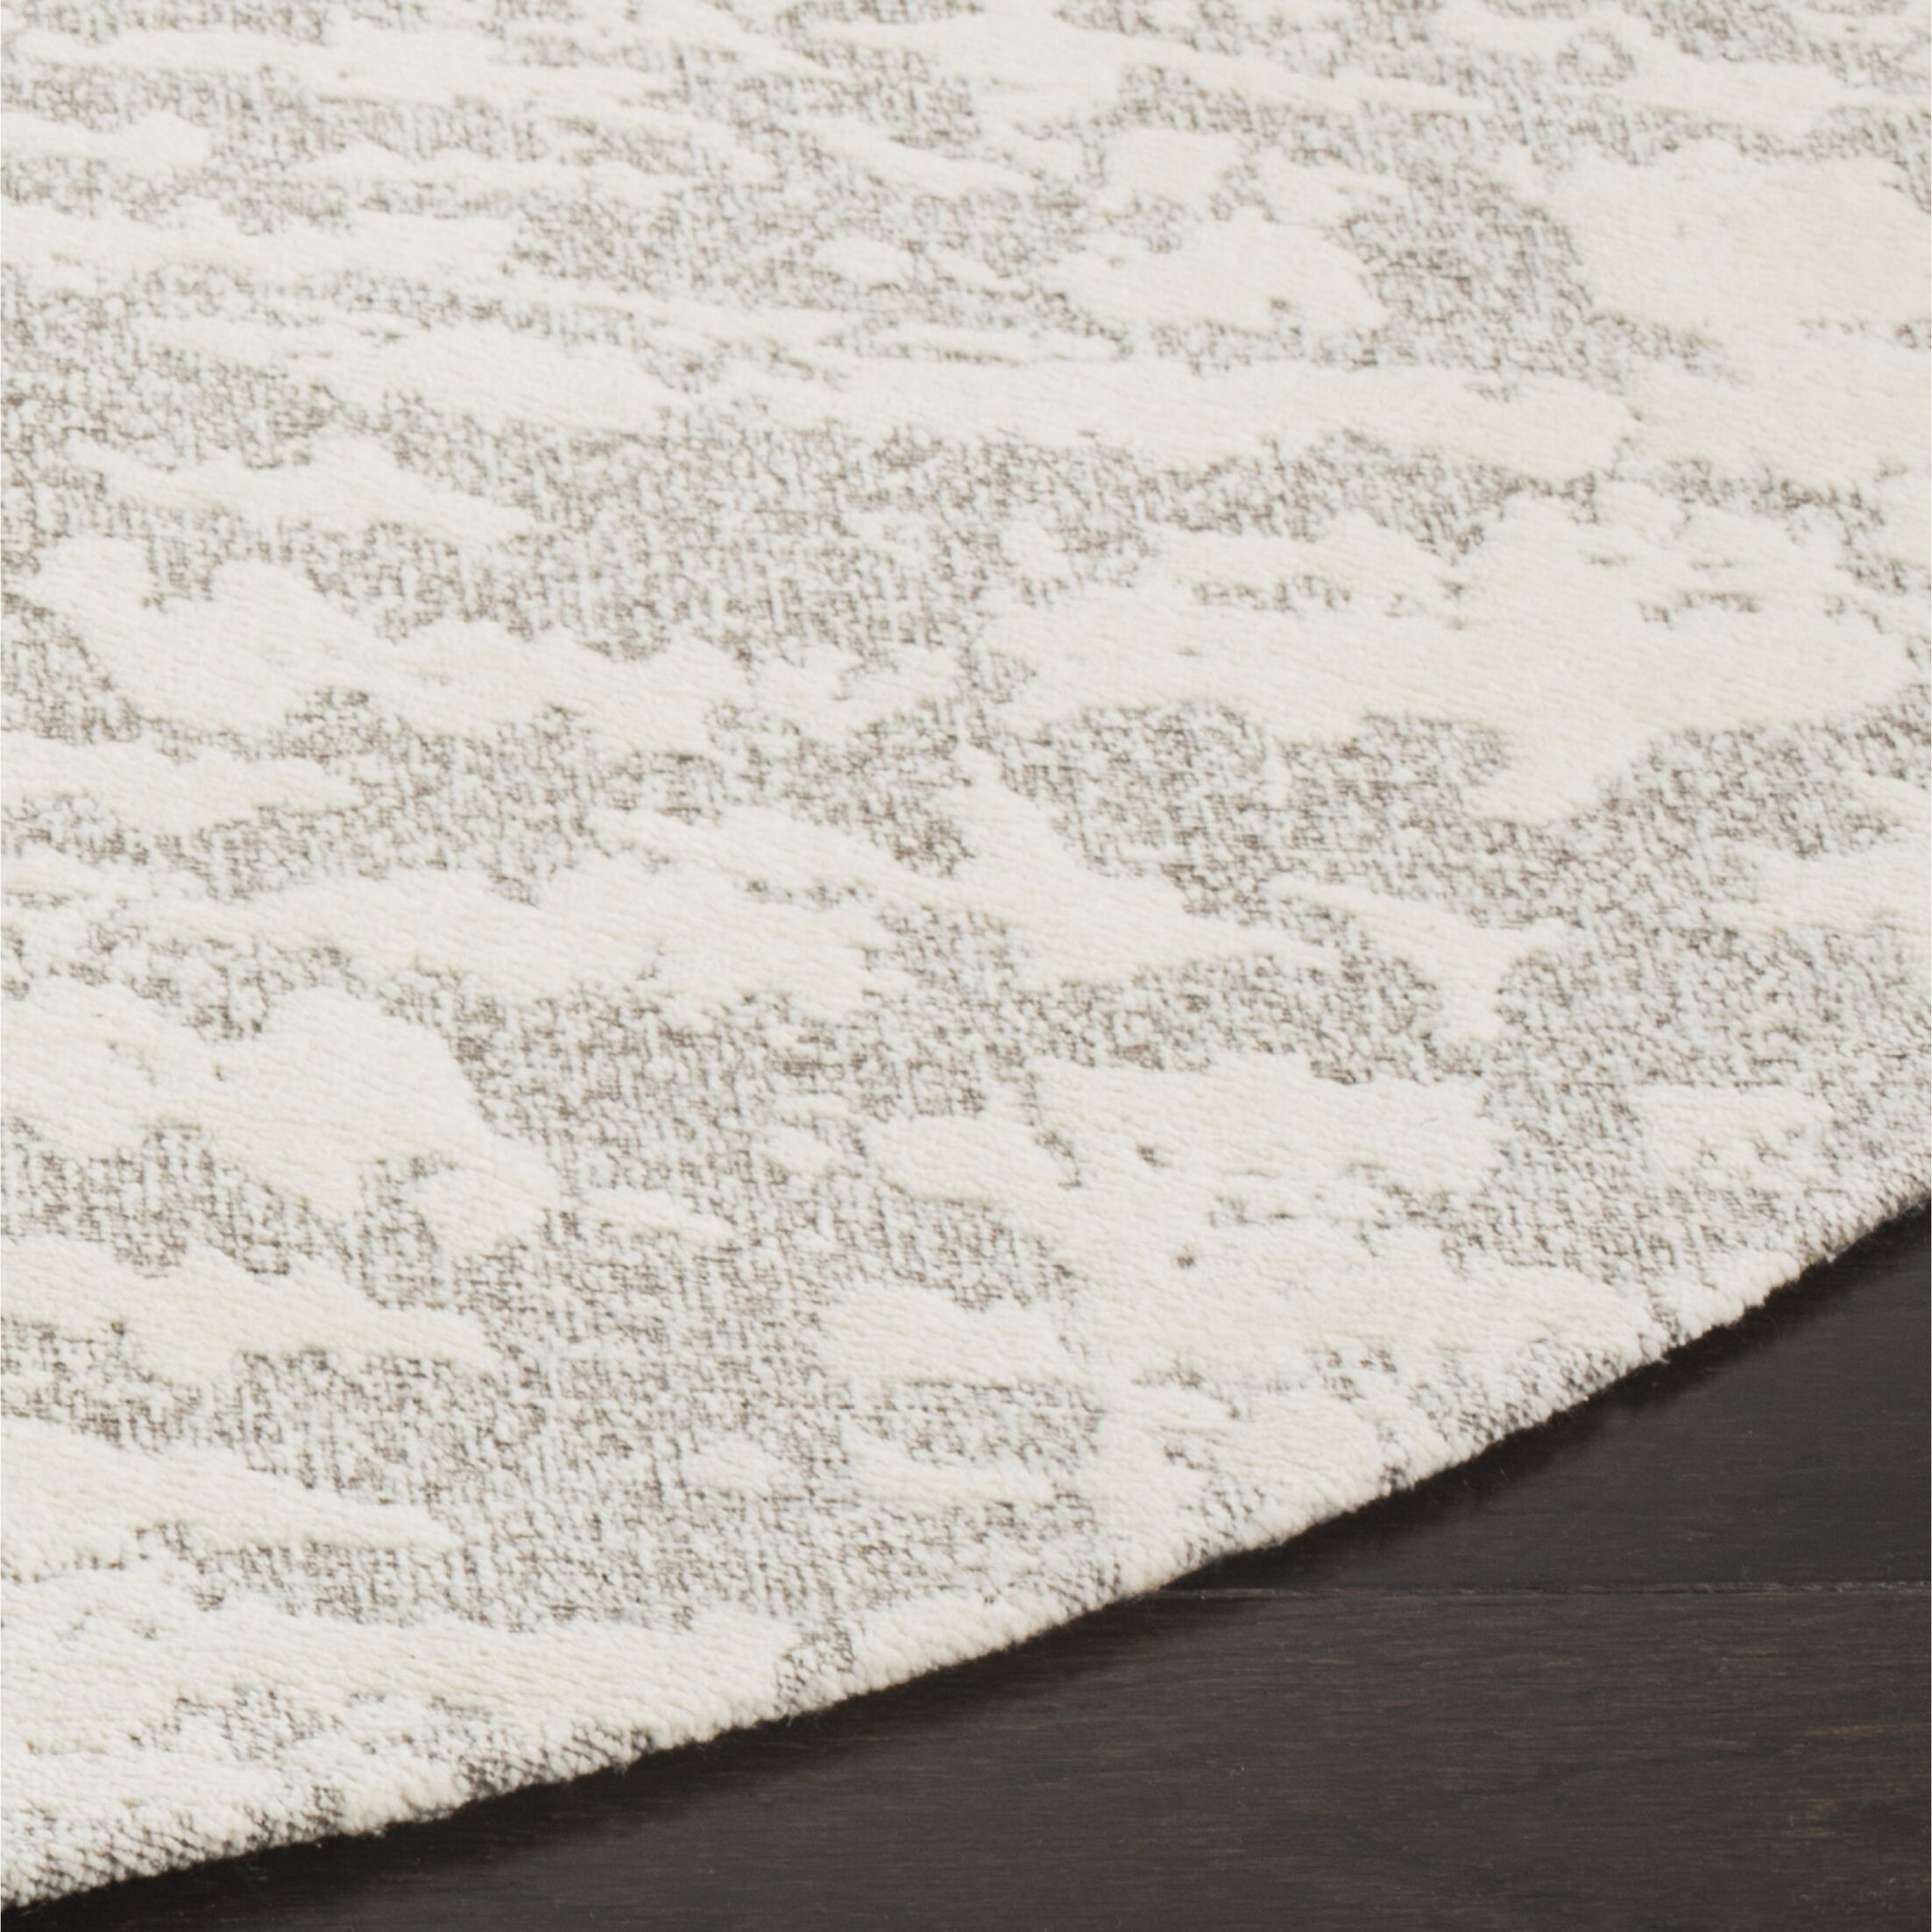 Marbella Hand-Woven Gray/Beige Area Rug Rug Size: Round 6'